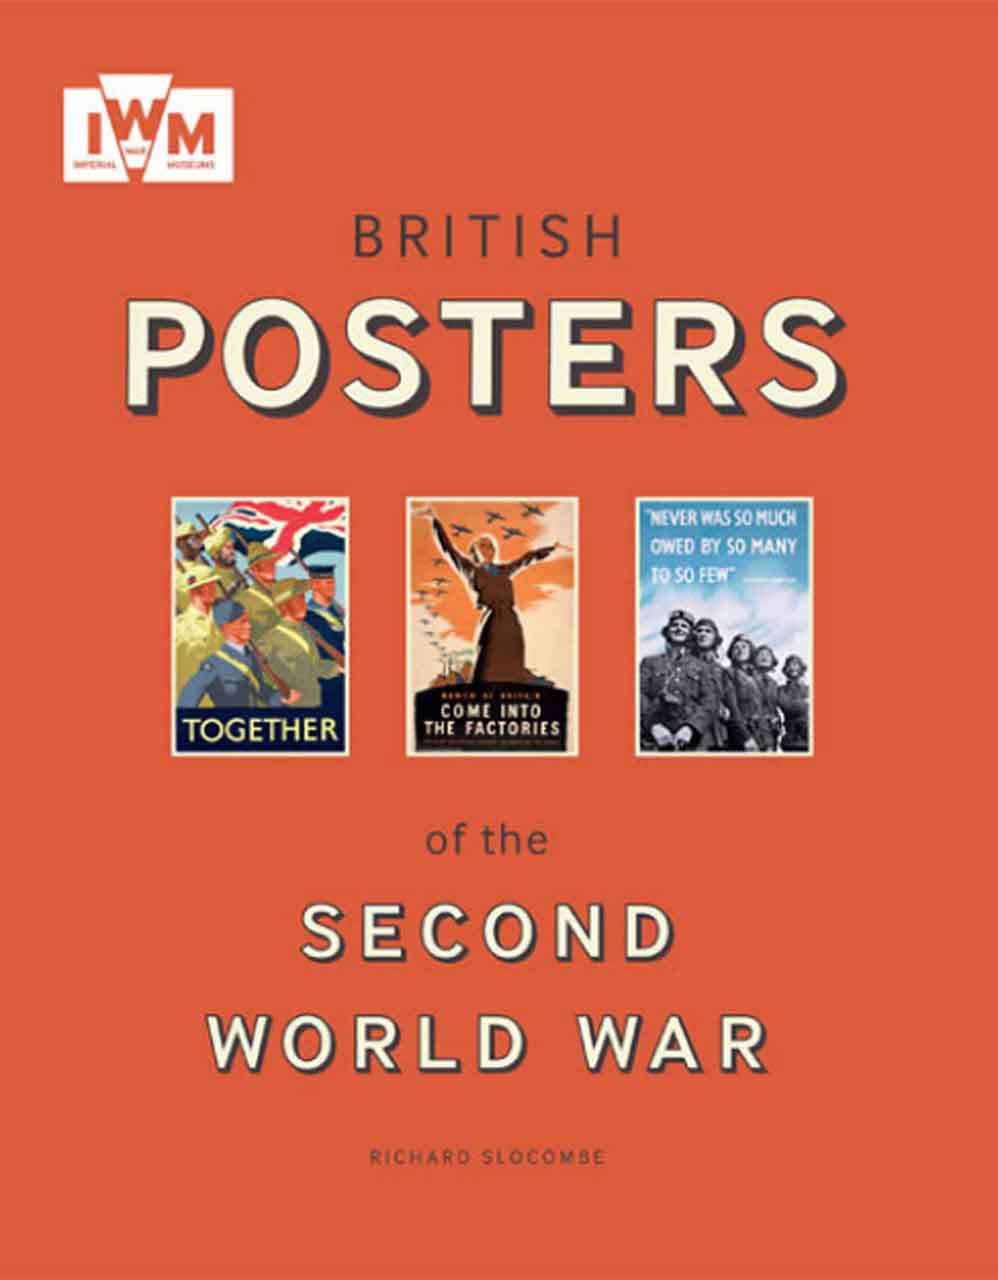 britain in the second world war essay Before world war ii began in 1939, world war i was called the great war, the  world  the countries of the allies included russia, france, british empire, italy, .